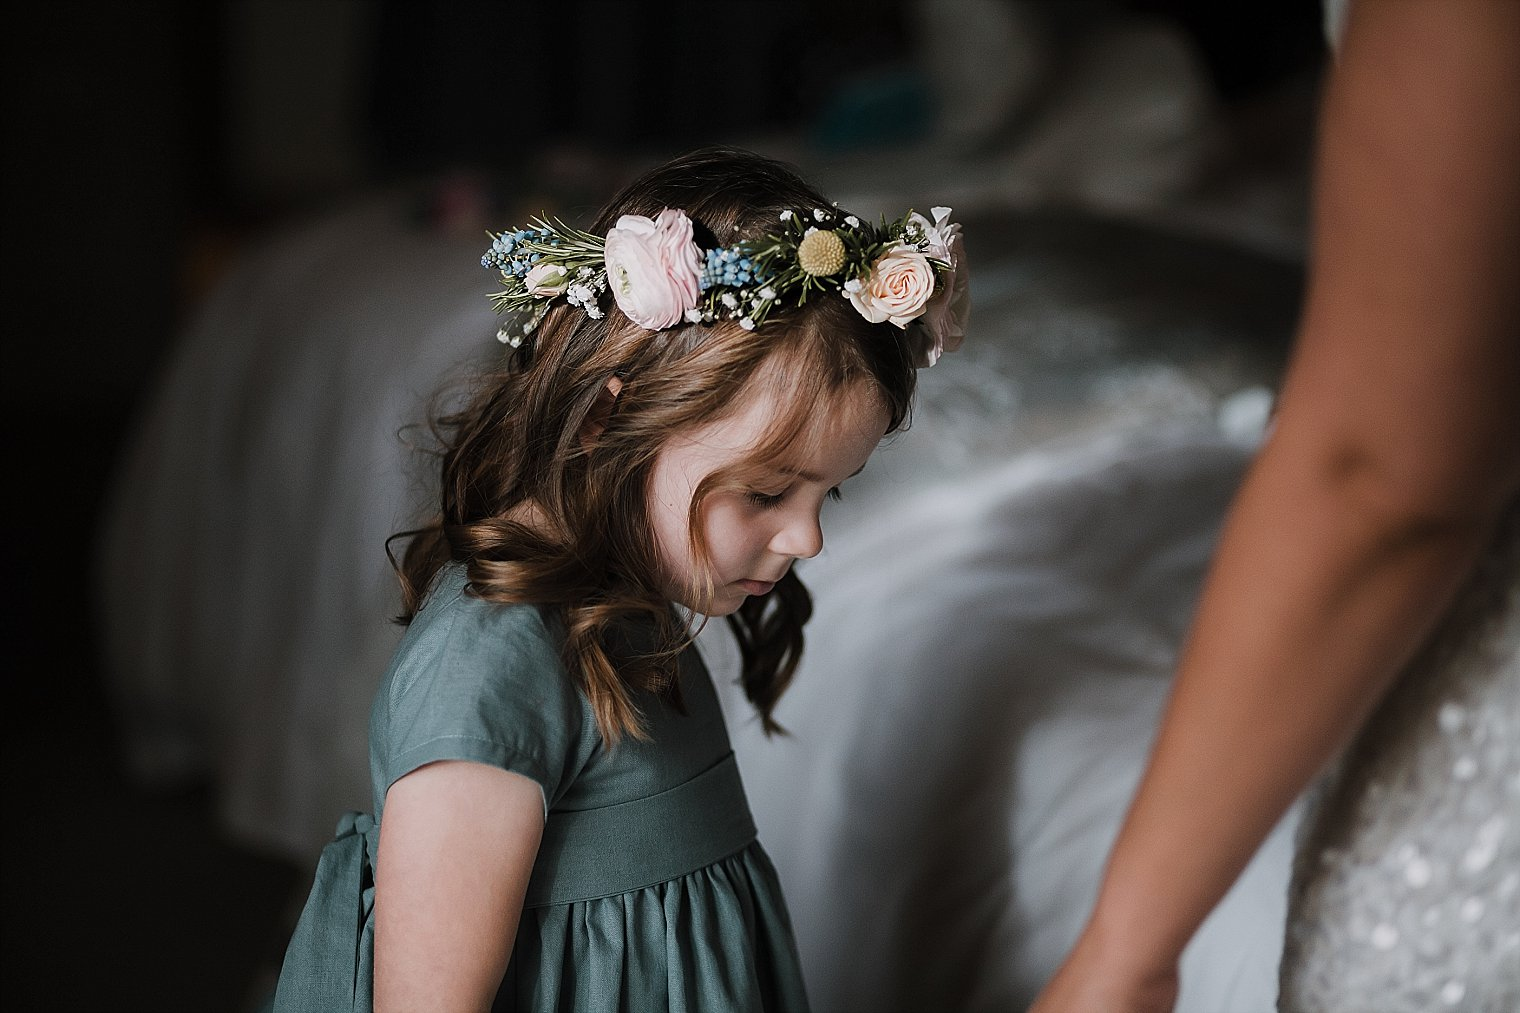 Flower girl with flower crown on